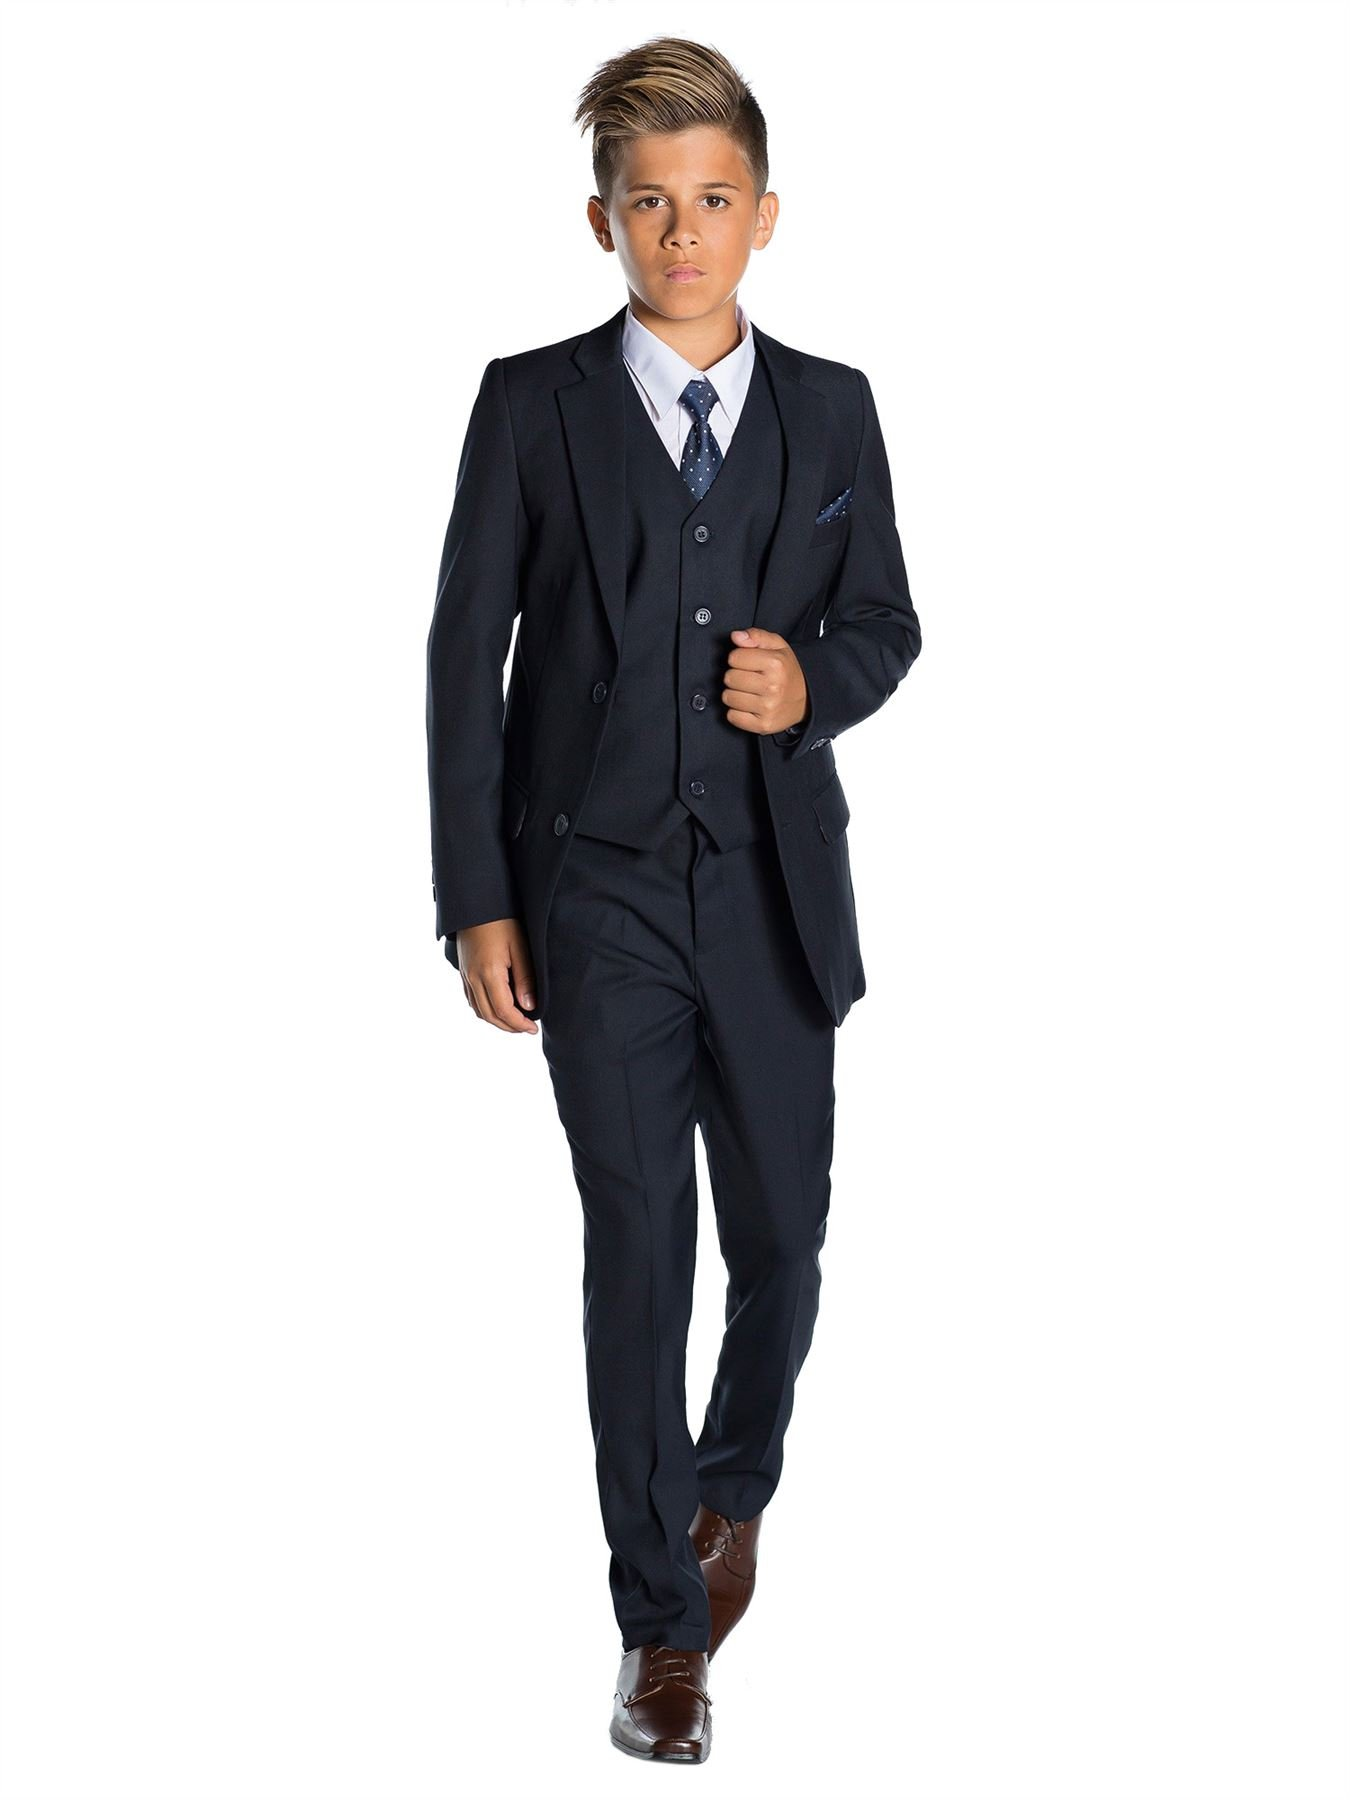 Paisley of London Boys Navy Ring Bearer Suit, 8